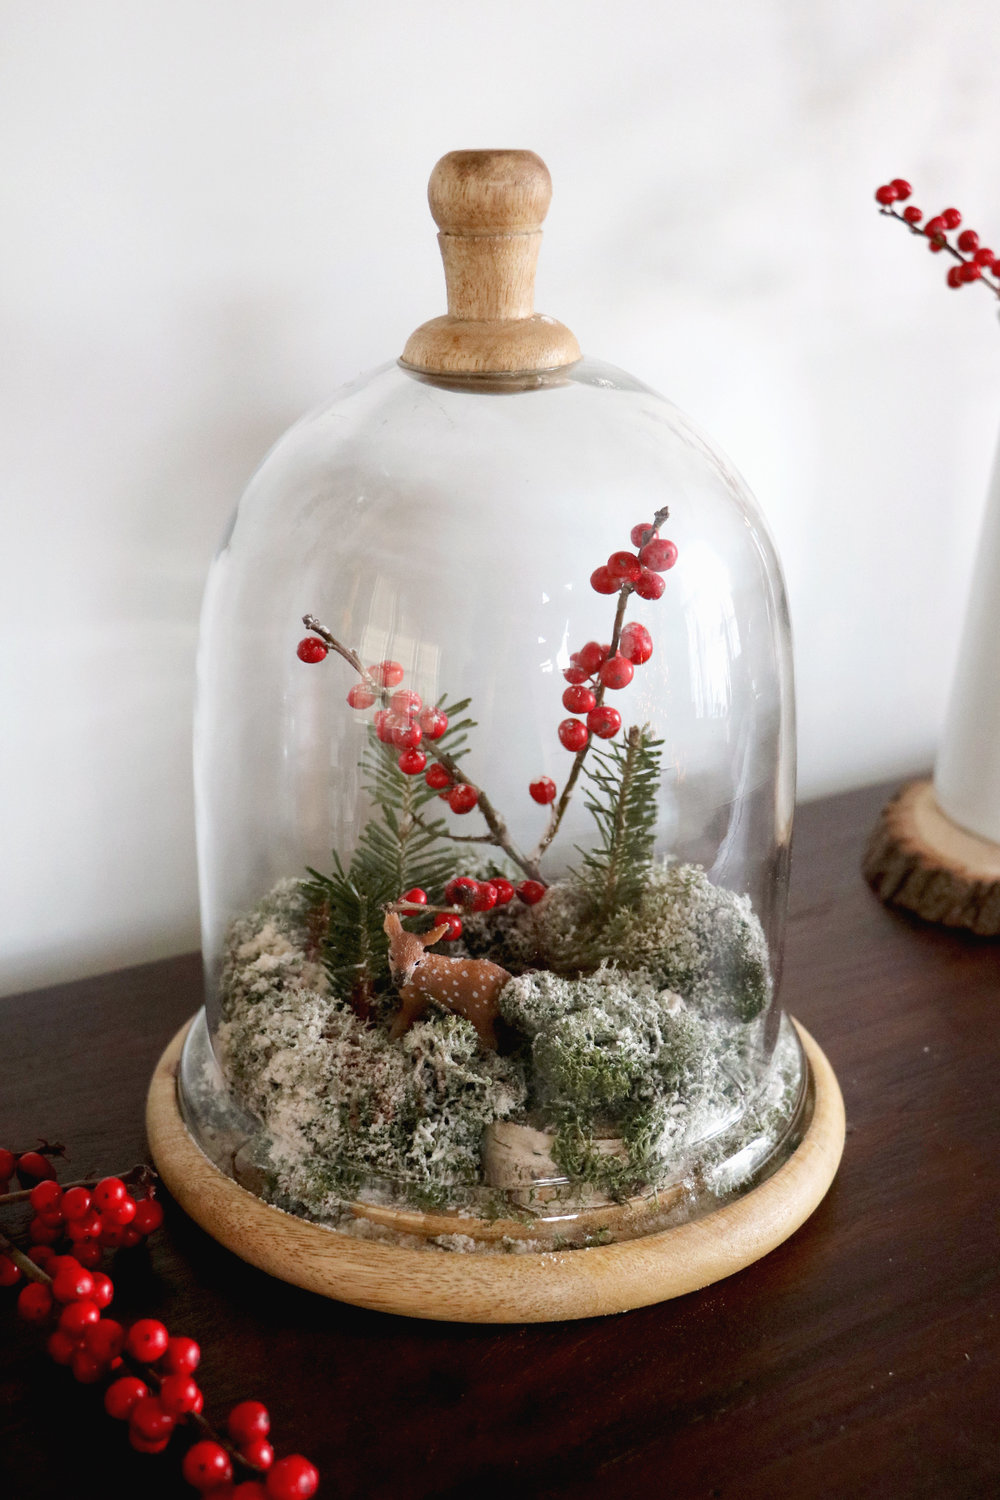 Make your own winter scene globe | root + dwell